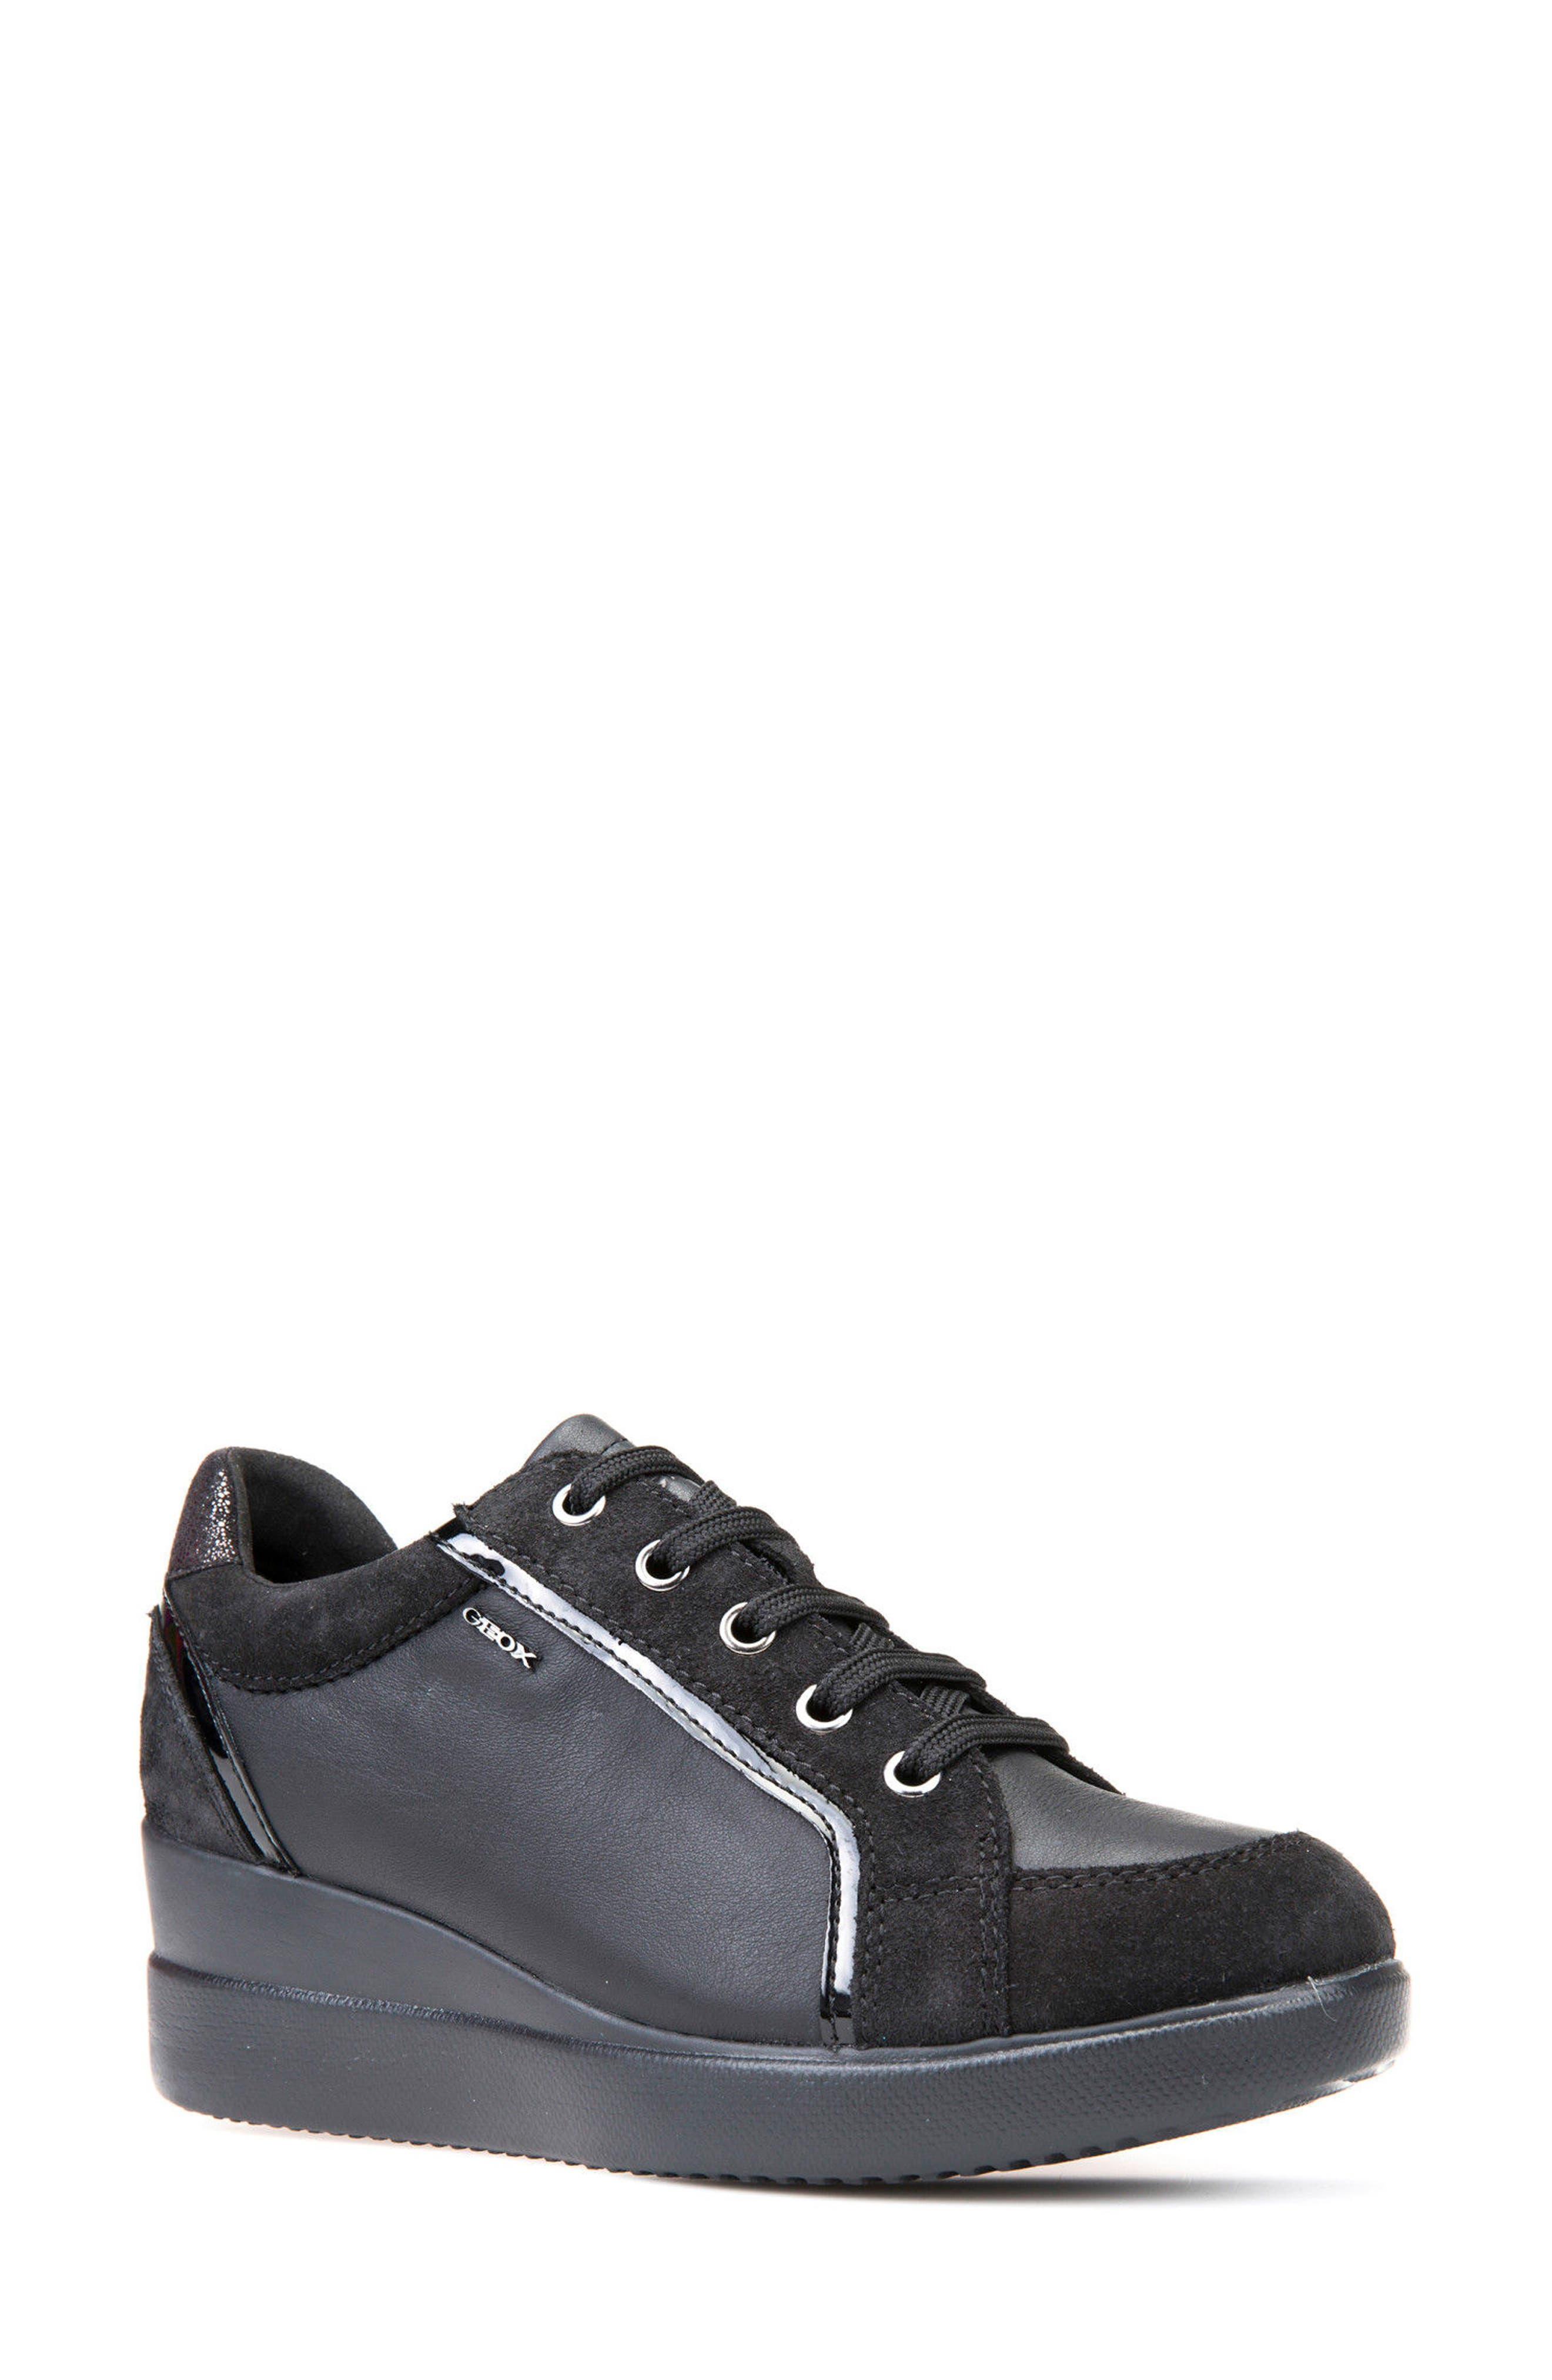 Stardust Wedge Sneaker,                         Main,                         color, Black Leather